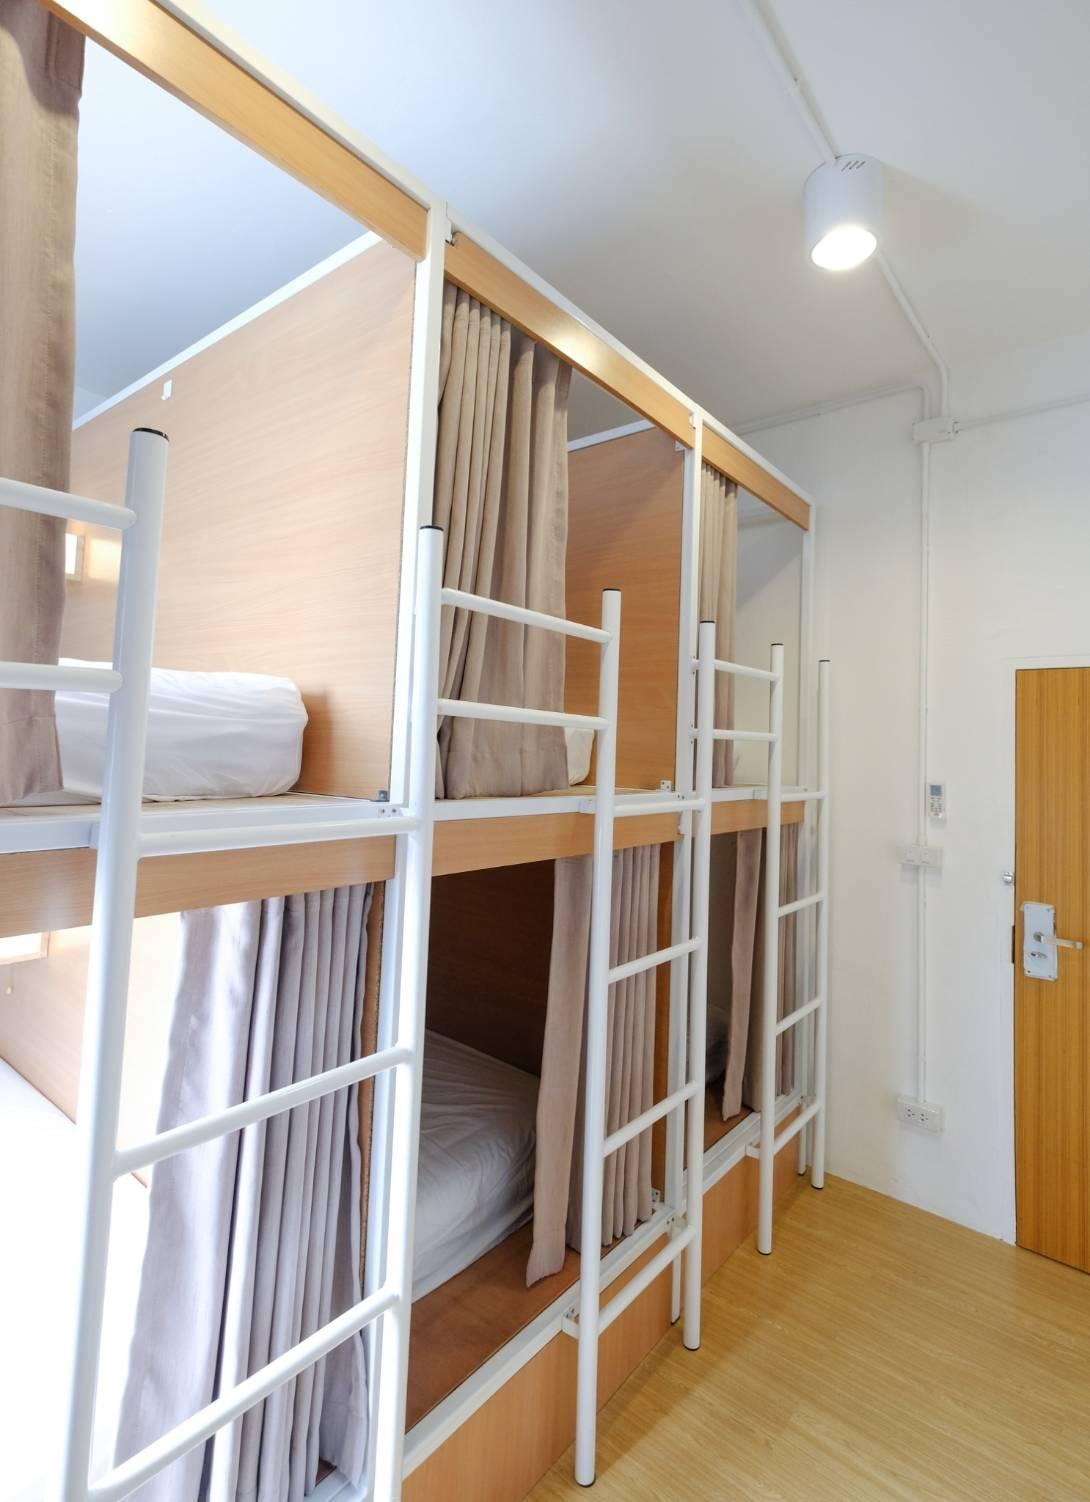 1 Posto Letto in Dormitorio Femminile con 6 Letti (1 Person in 6-Bed Dormitory - Female Only)